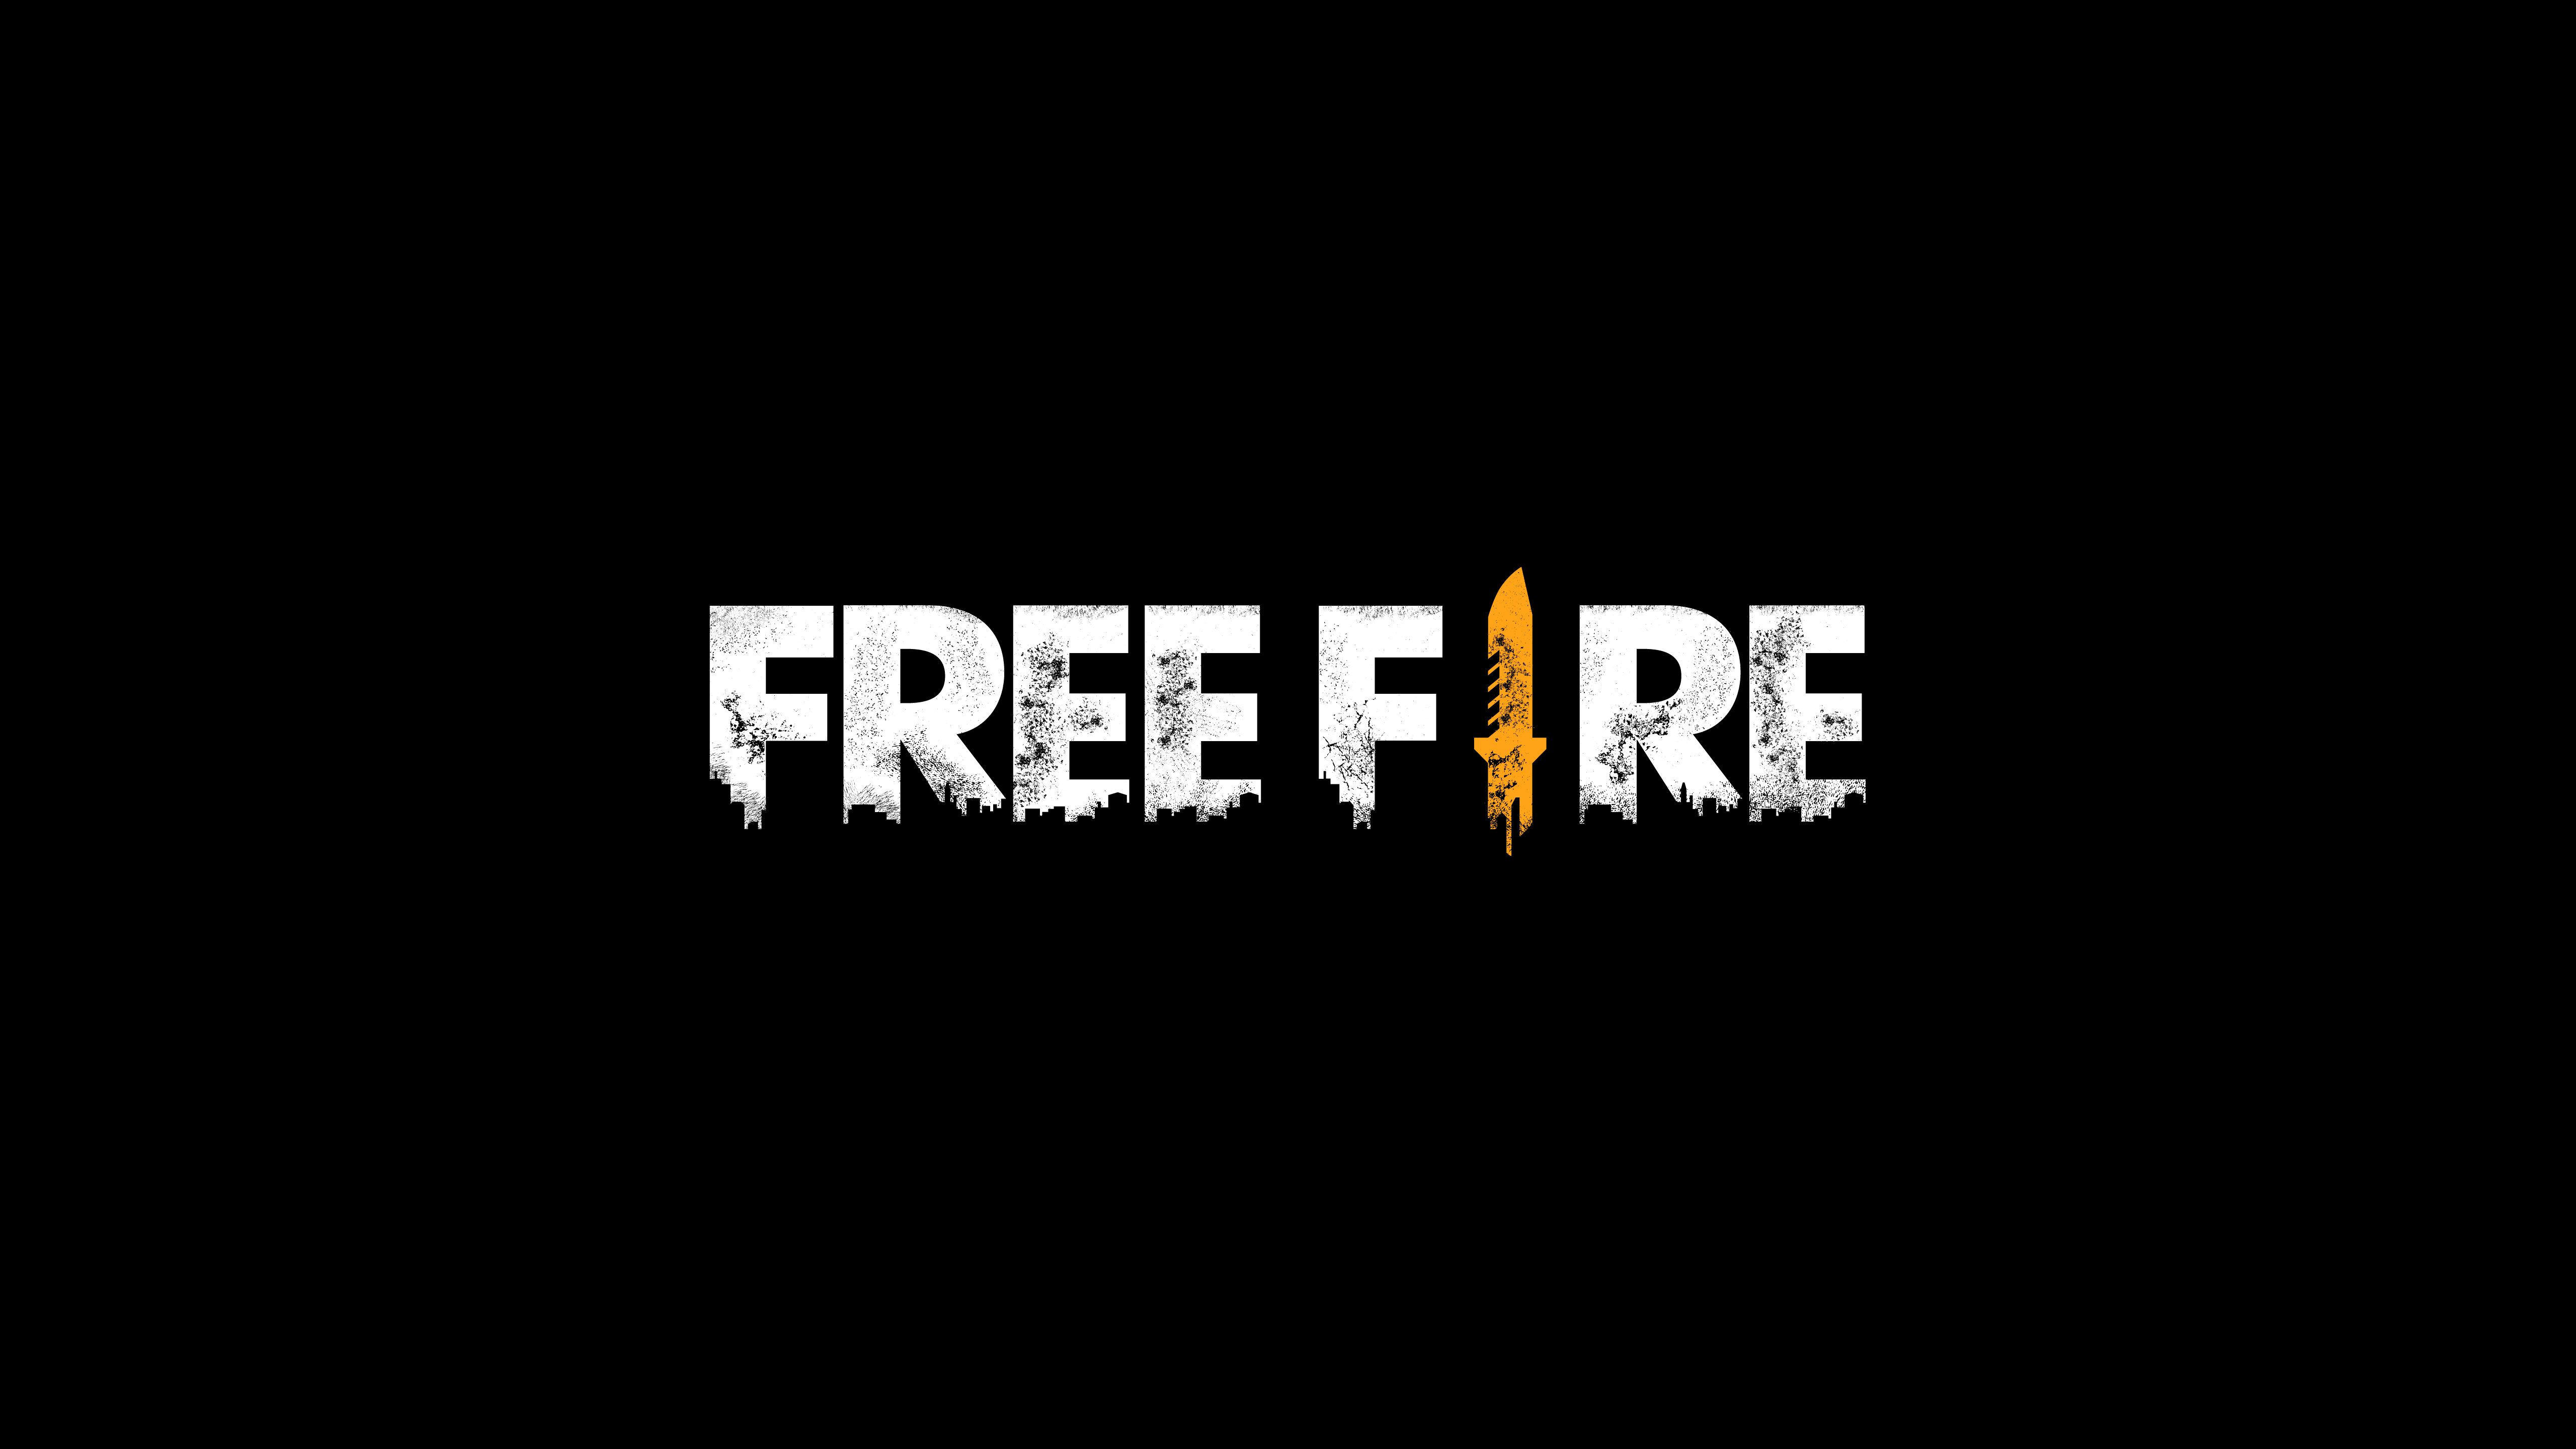 free fire logo wallpapers top free free fire logo backgrounds wallpaperaccess free fire logo wallpapers top free